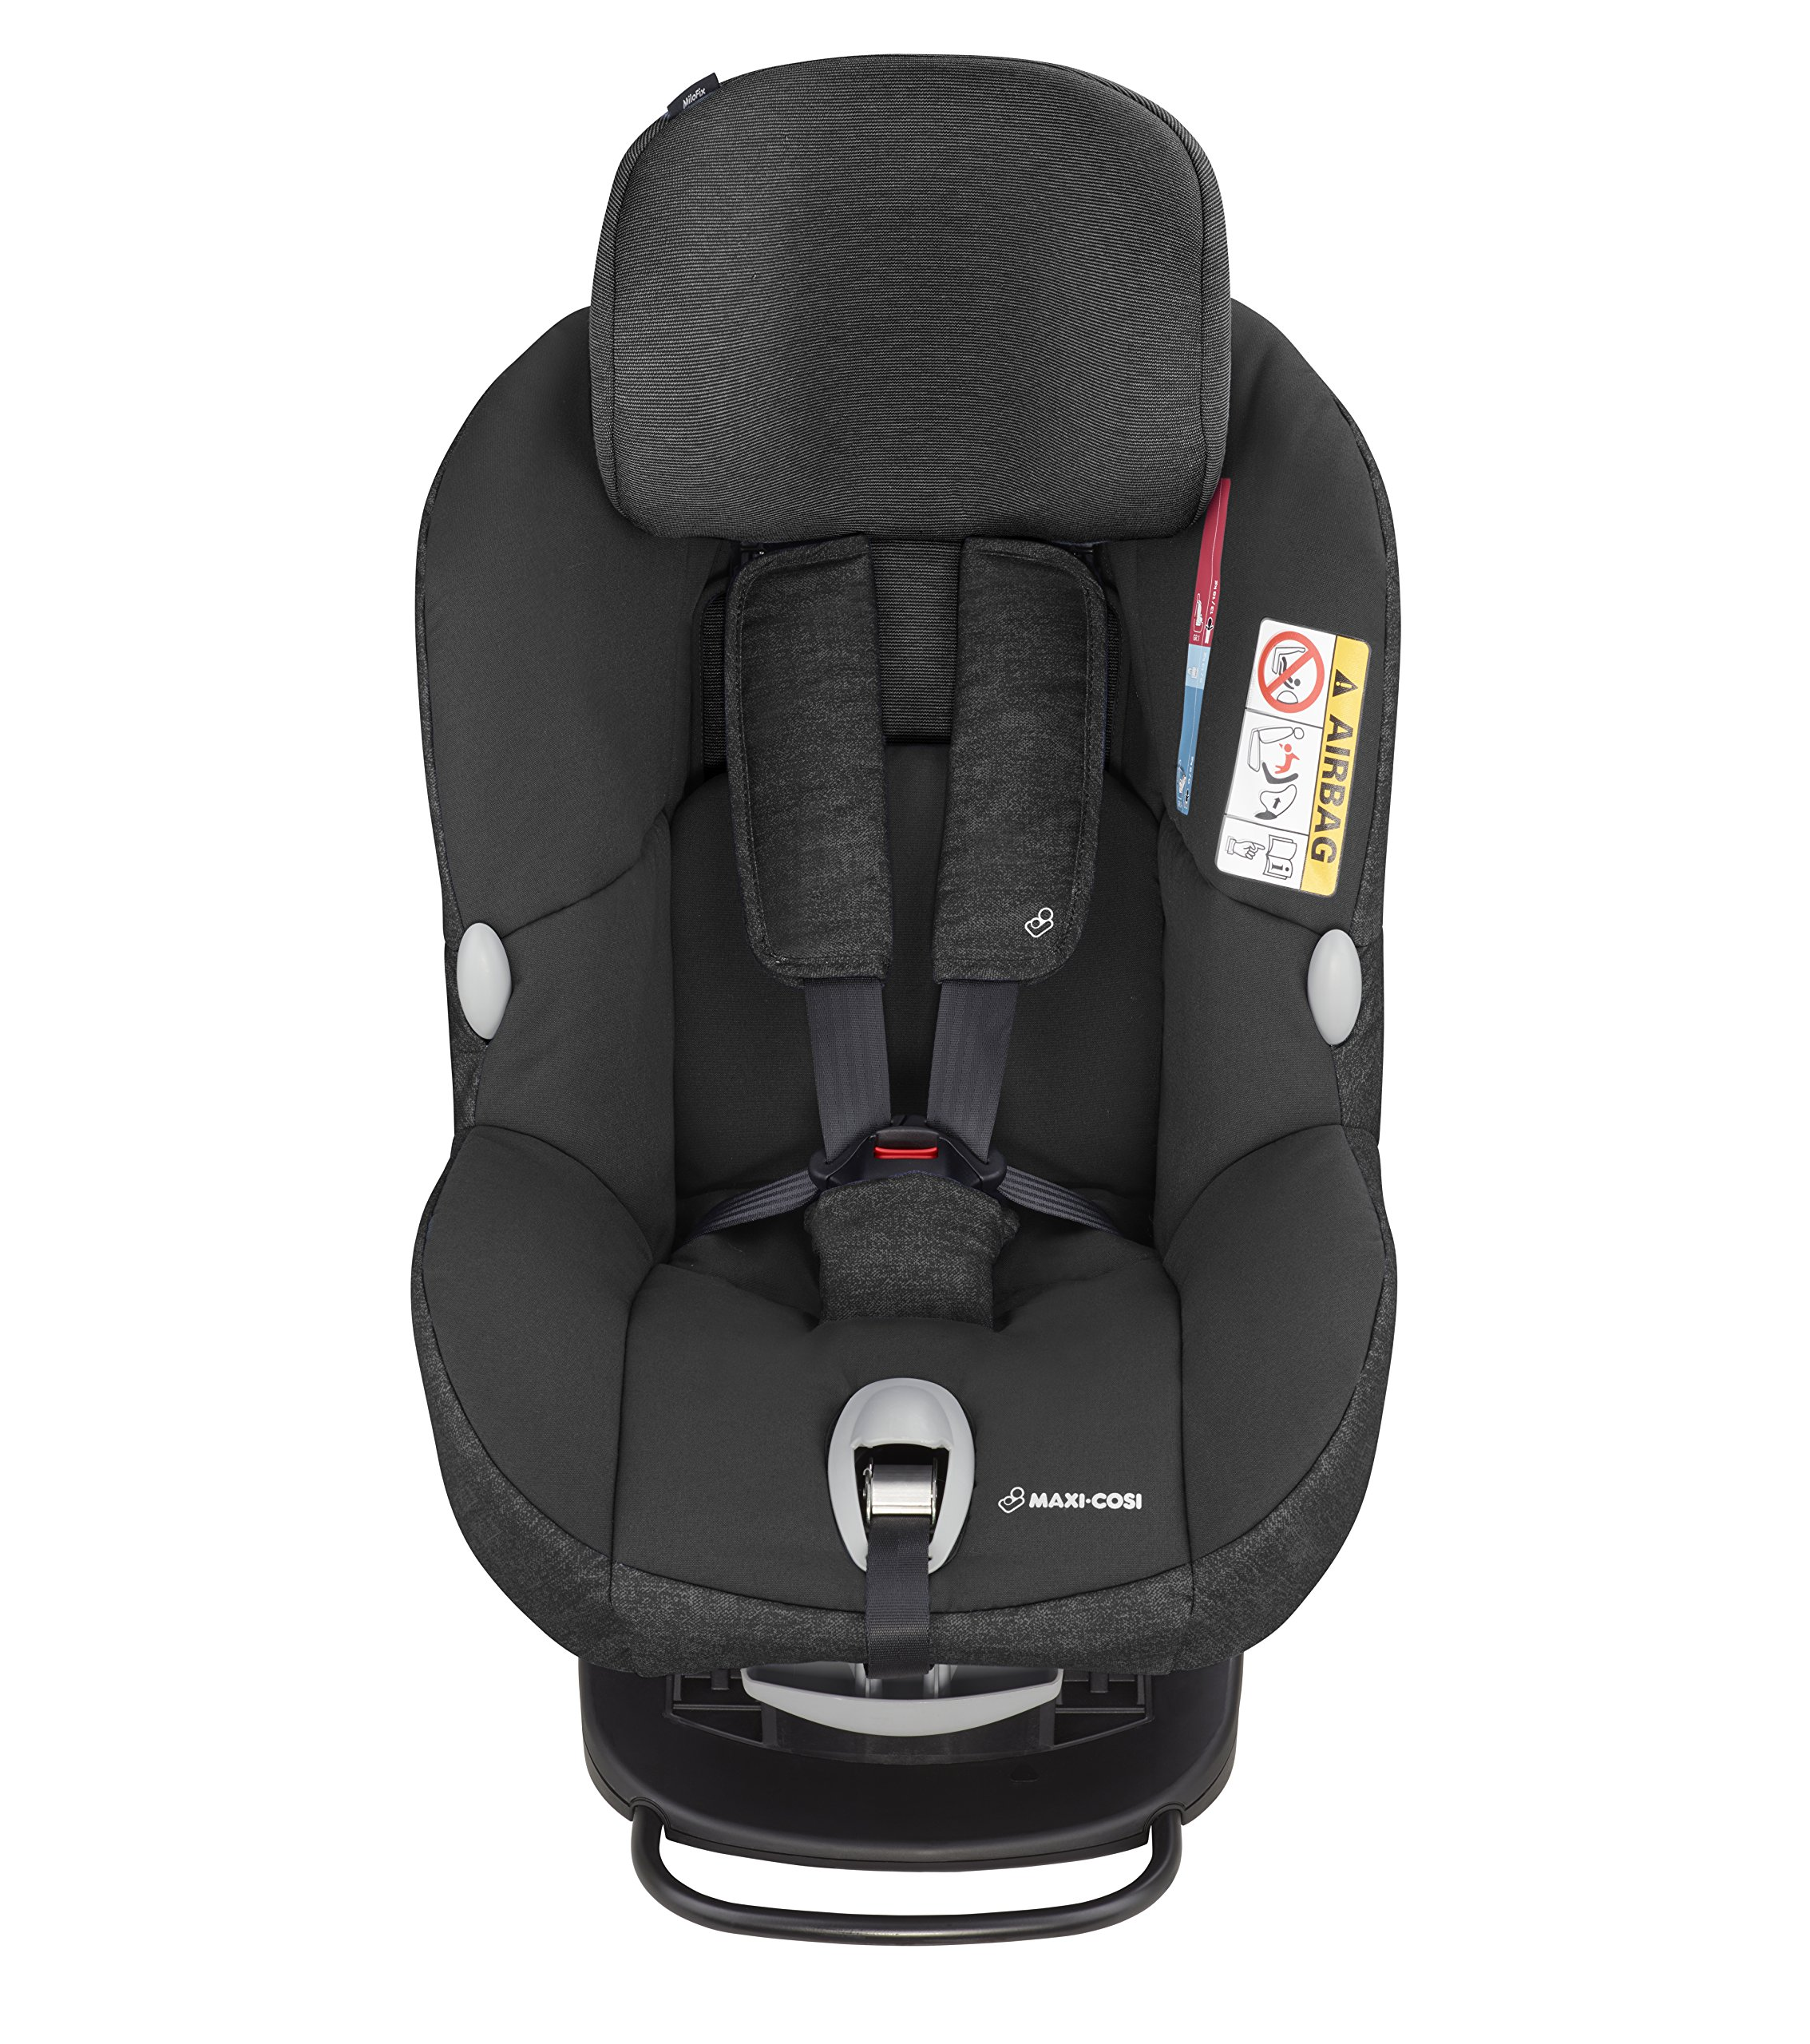 Maxi-Cosi MiloFix ISOFIX Combination Car Seat, Group 0+/1 car seat, Rear and Forward-facing, 0-4 years, 0-18 kg, Nomad Black Maxi-Cosi Rear and forward facing group 0+/1 car seat, suitable from birth to 18 kg (birth to 4 years) i-Size car seat, extended rearward-facing travel up until 18 months Padded seat and angled base provide additional leg room in rear-facing position 5